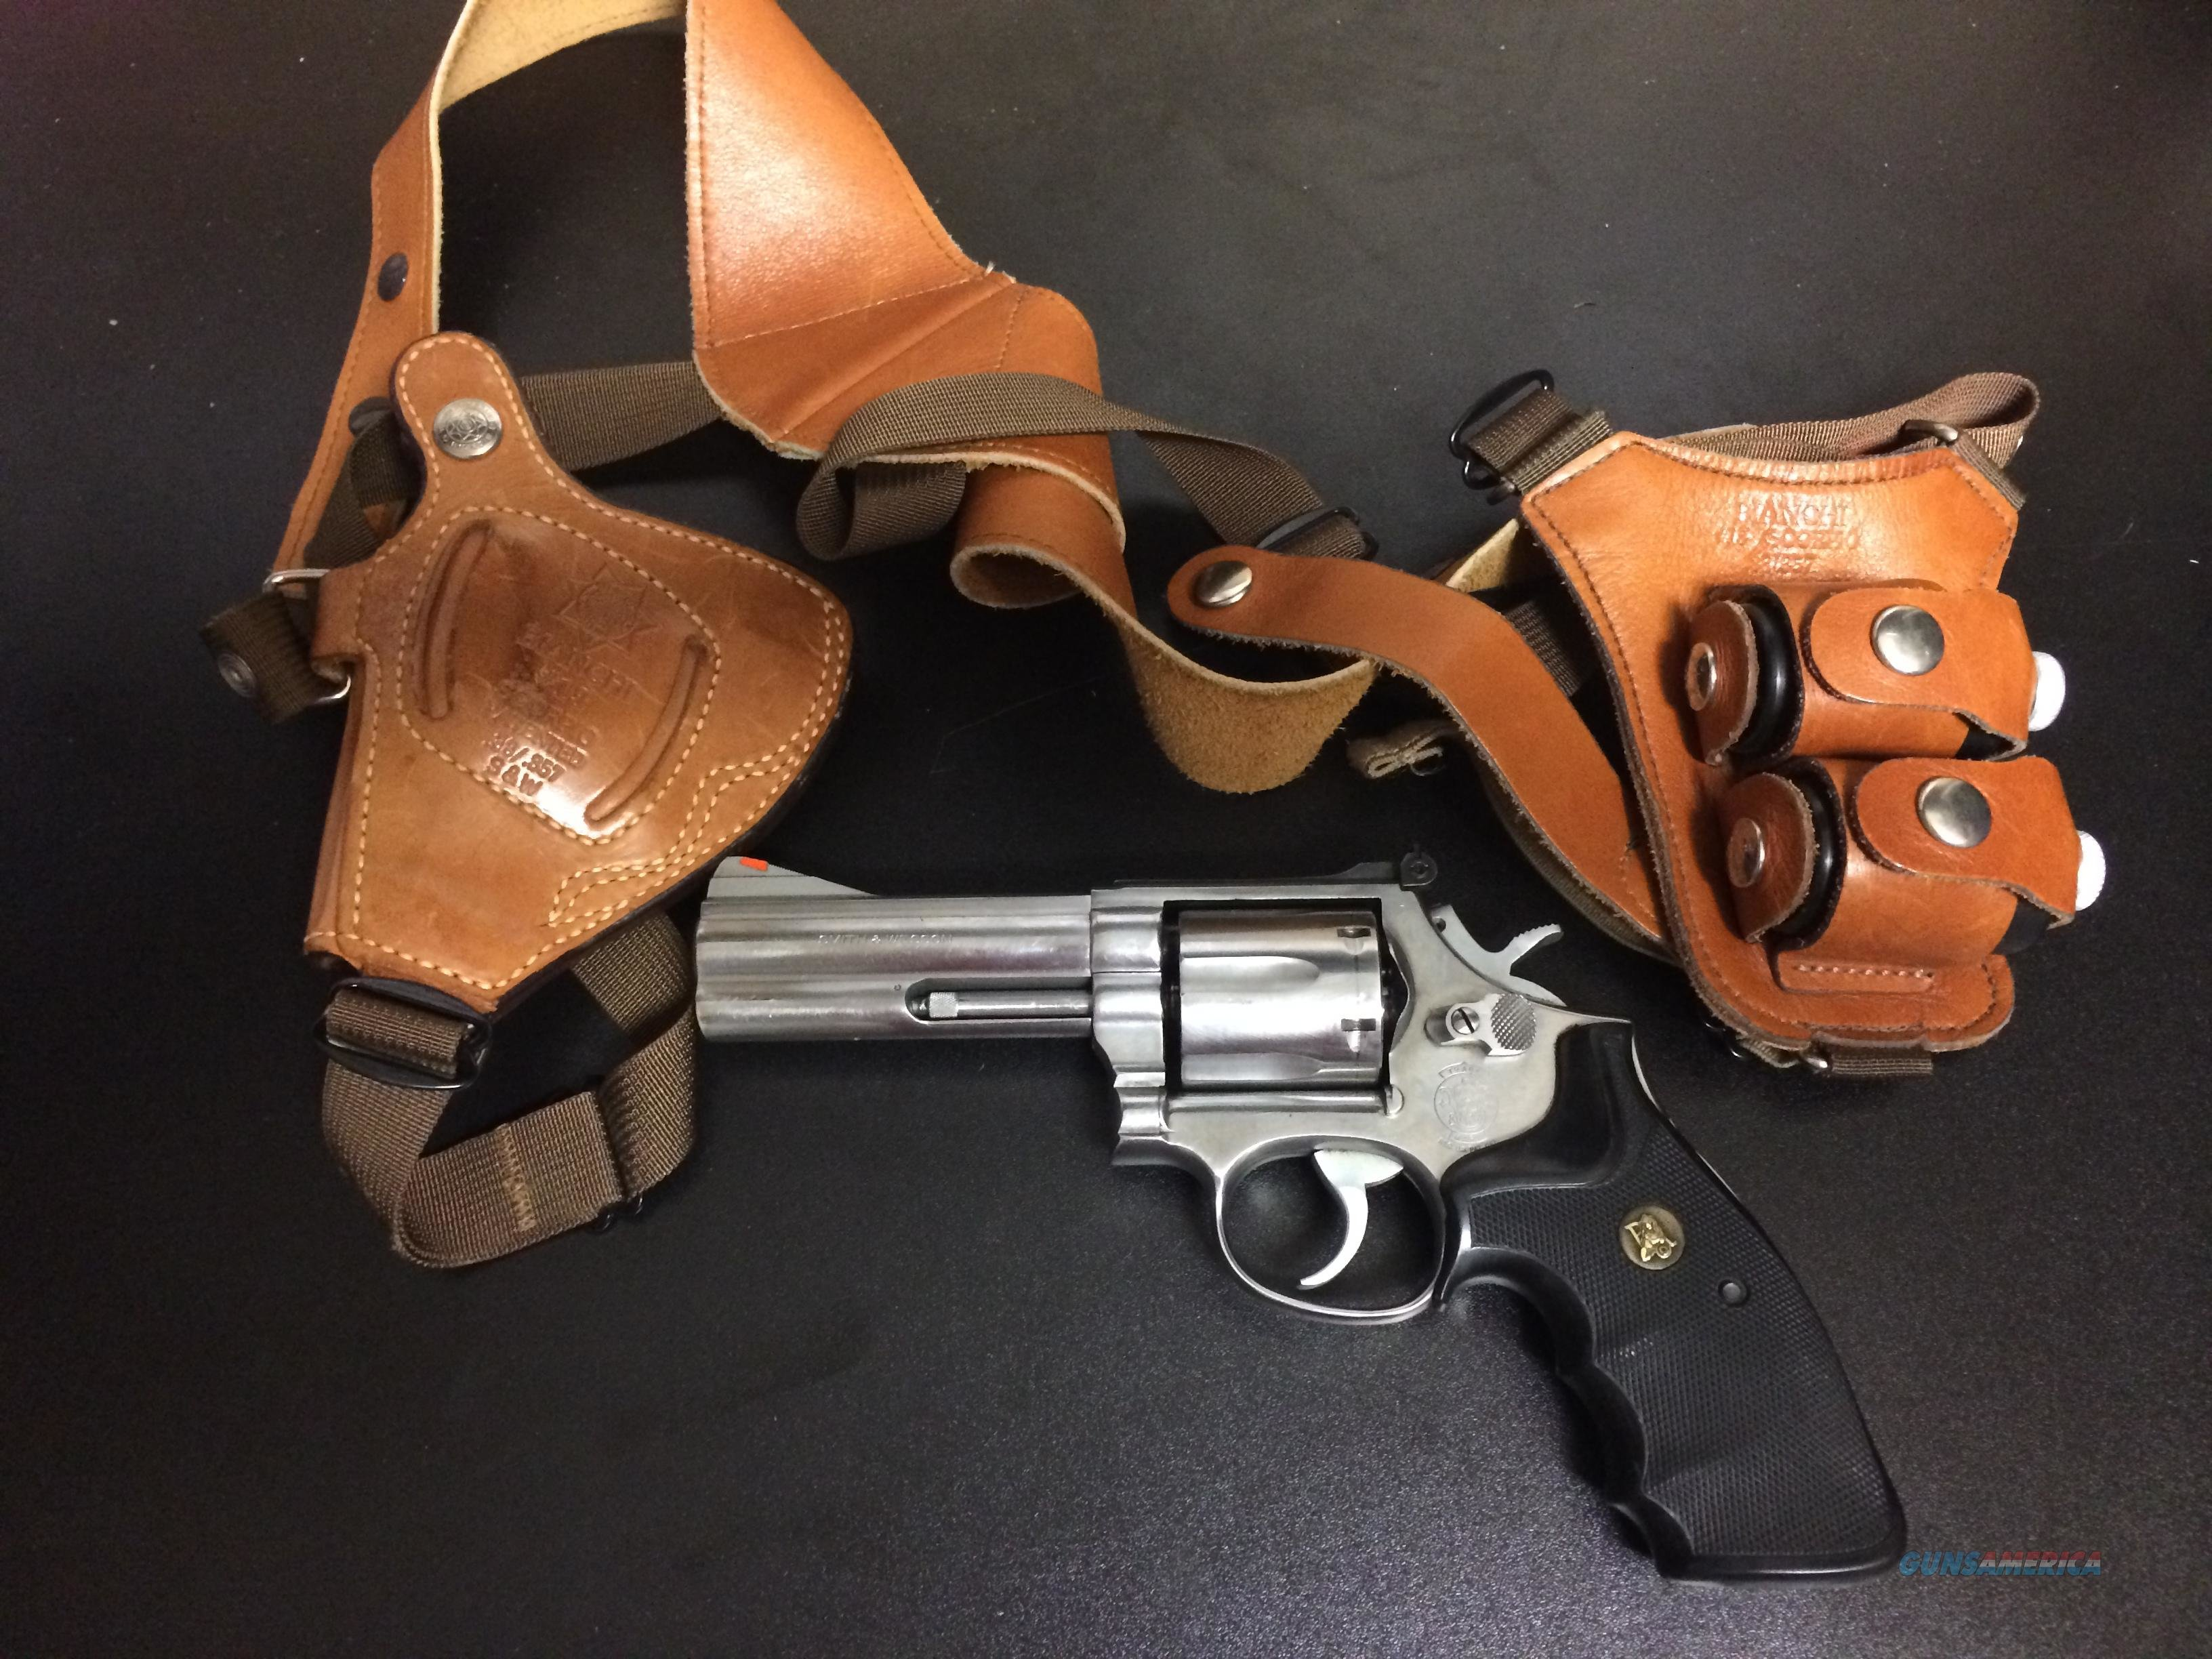 SW 686 4 Barrel 357 Mag With Bianchi Shoulder Holster And Two Speed Loaders